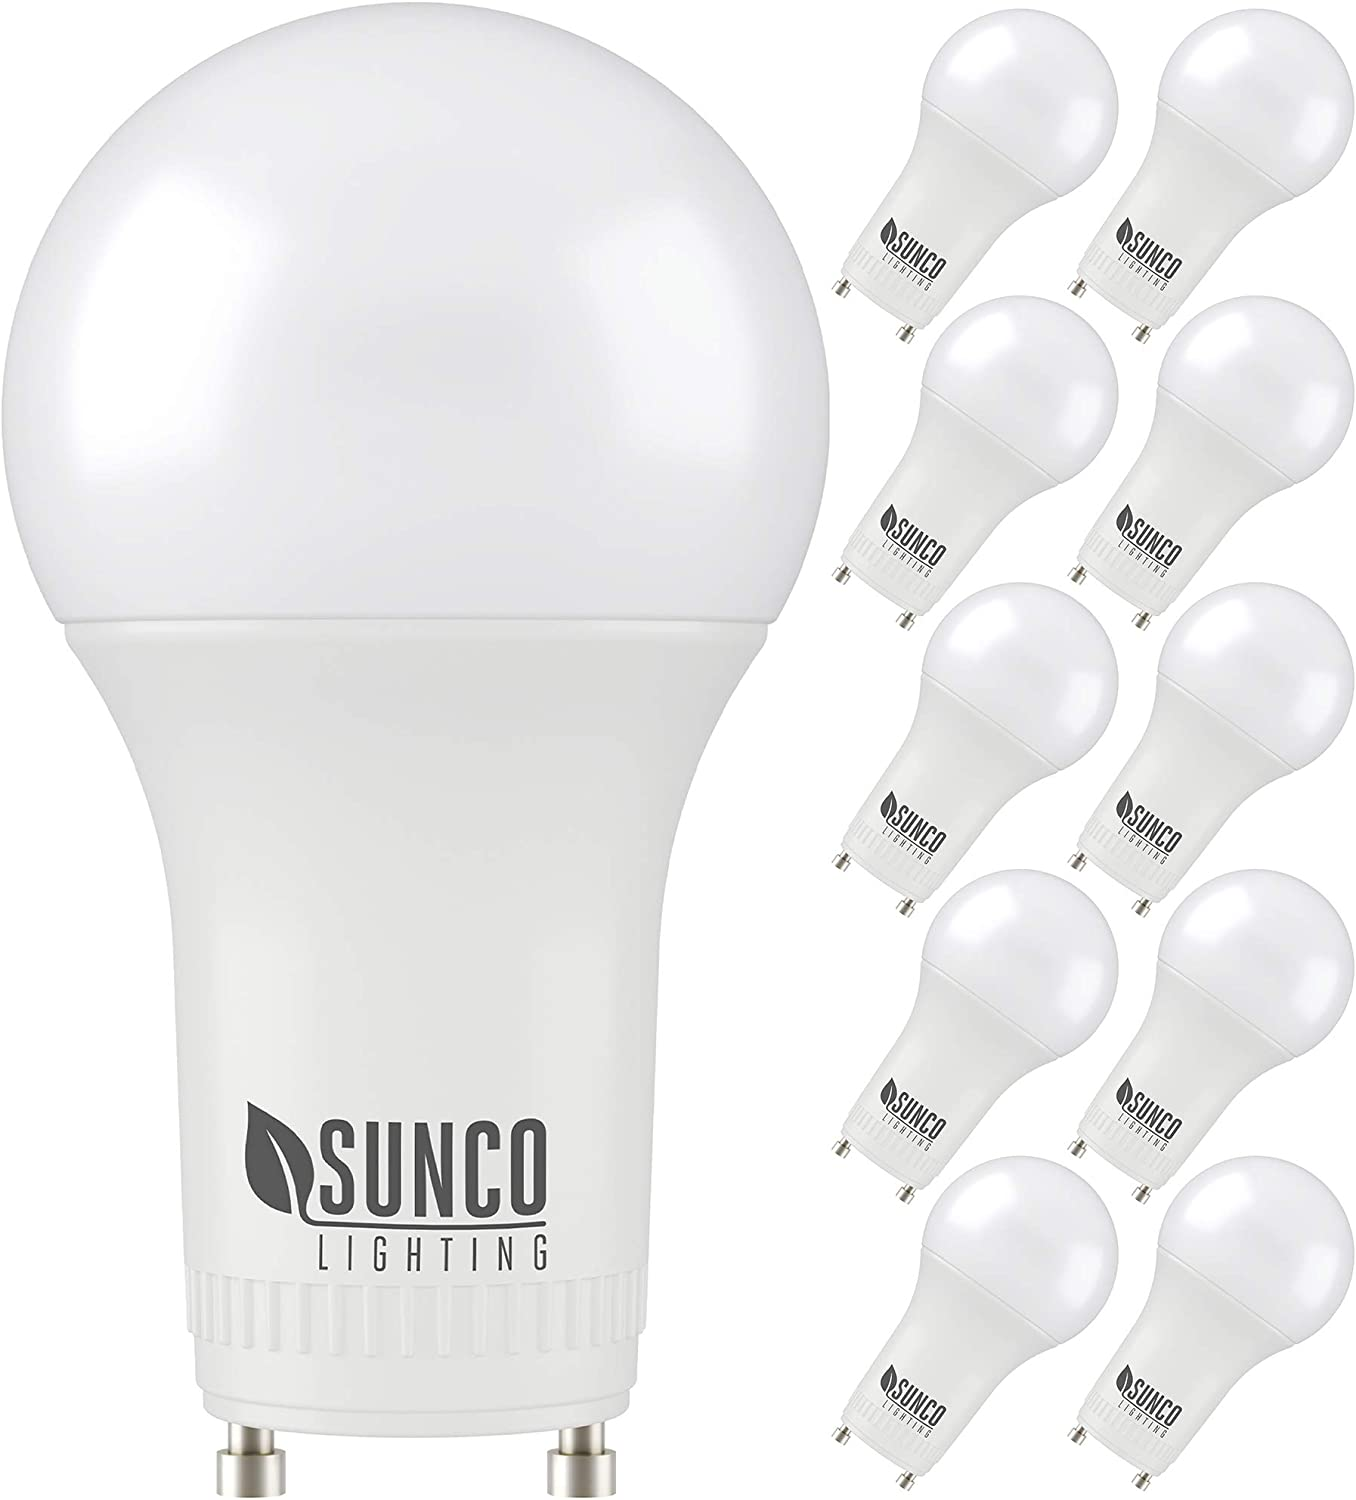 Amazon Com Sunco Lighting 10 Pack A19 Led Bulb 9w 60w Cfl Replacement 3000k Warm White 800 Lm Dimmable Twist And Lock Gu24 Pin Base Indoor Light Ul Home Improvement